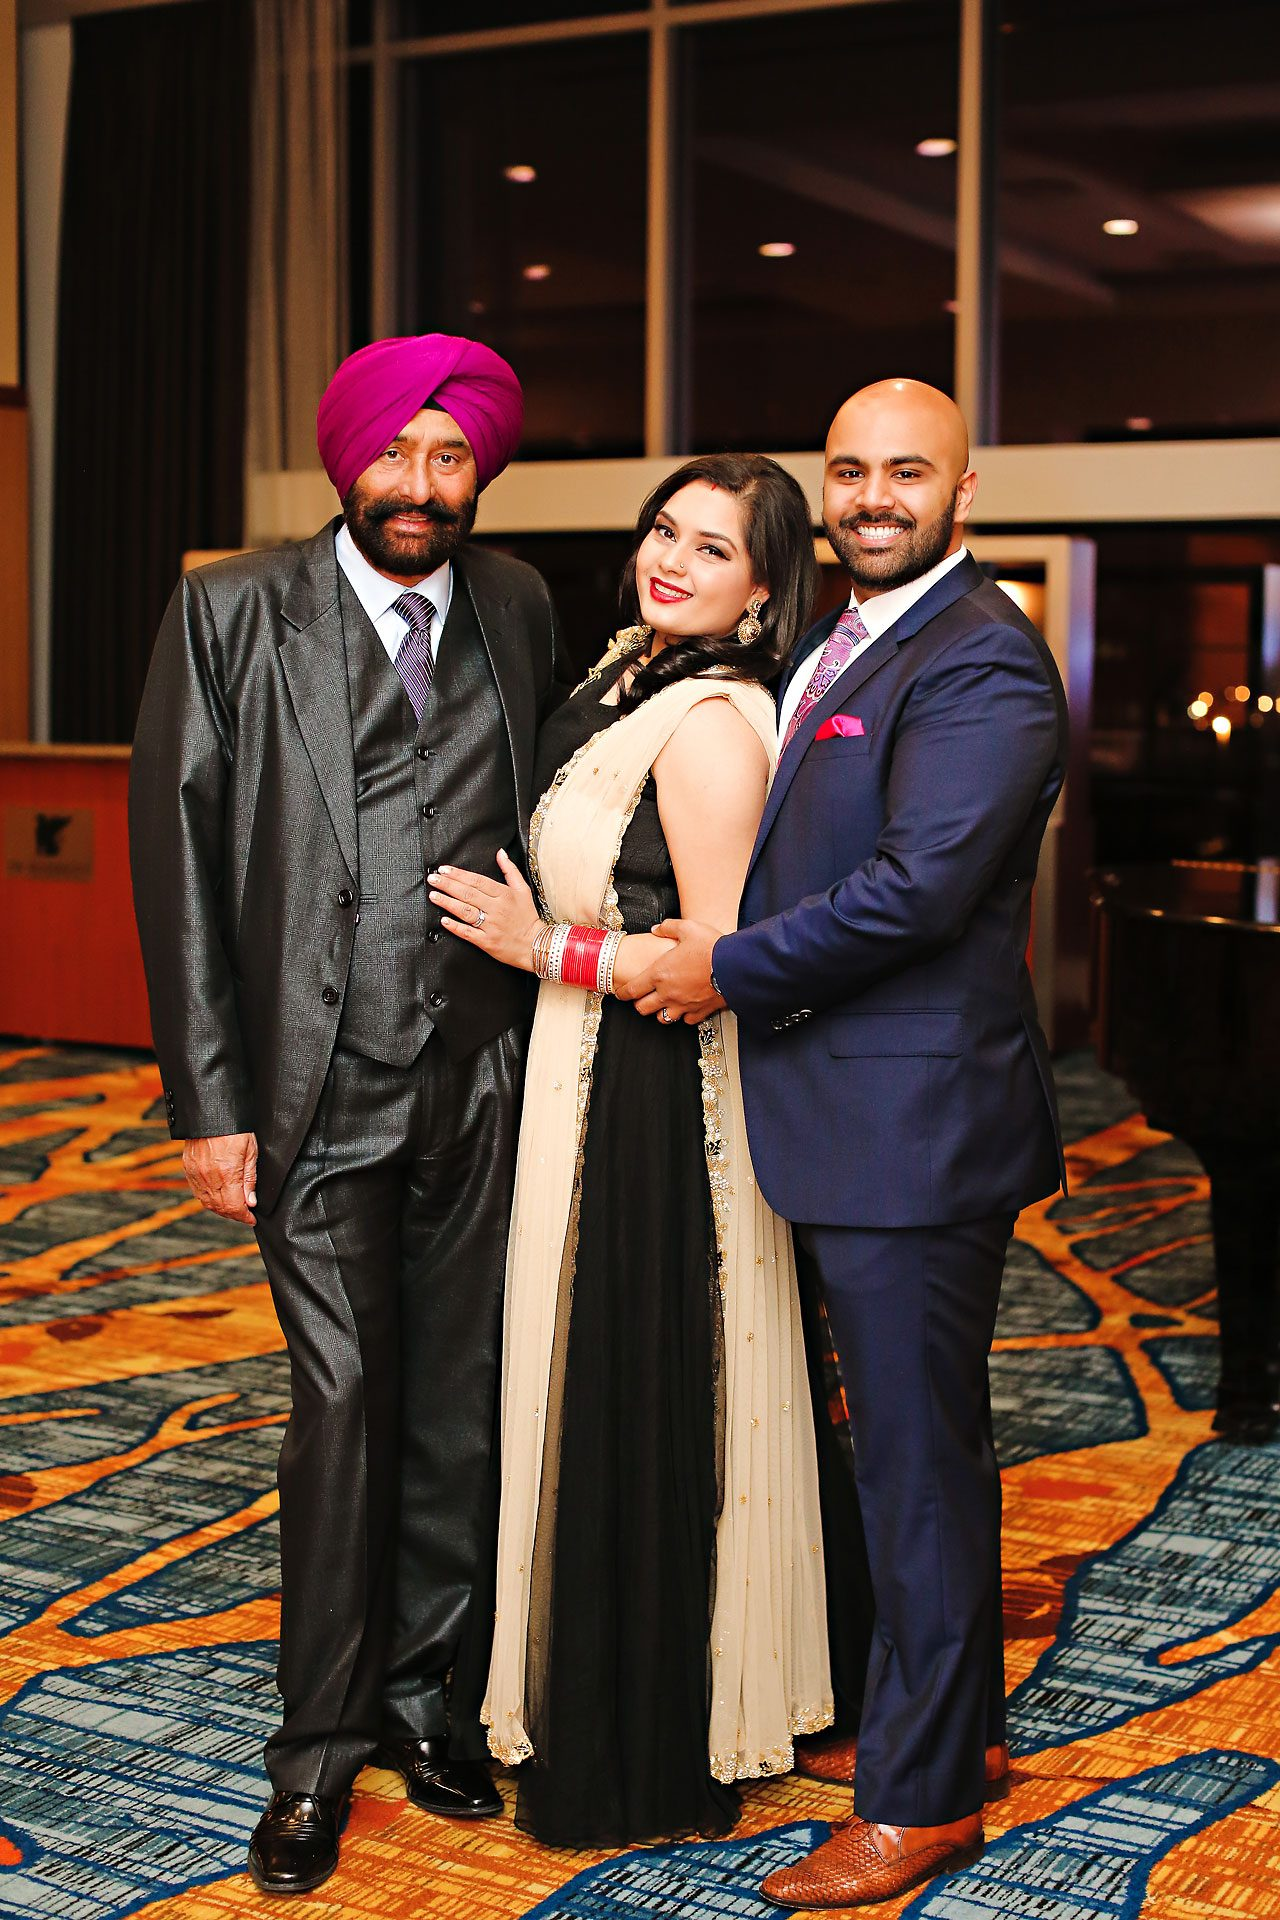 Jasleen Caarn JW Marriott Wedding 116